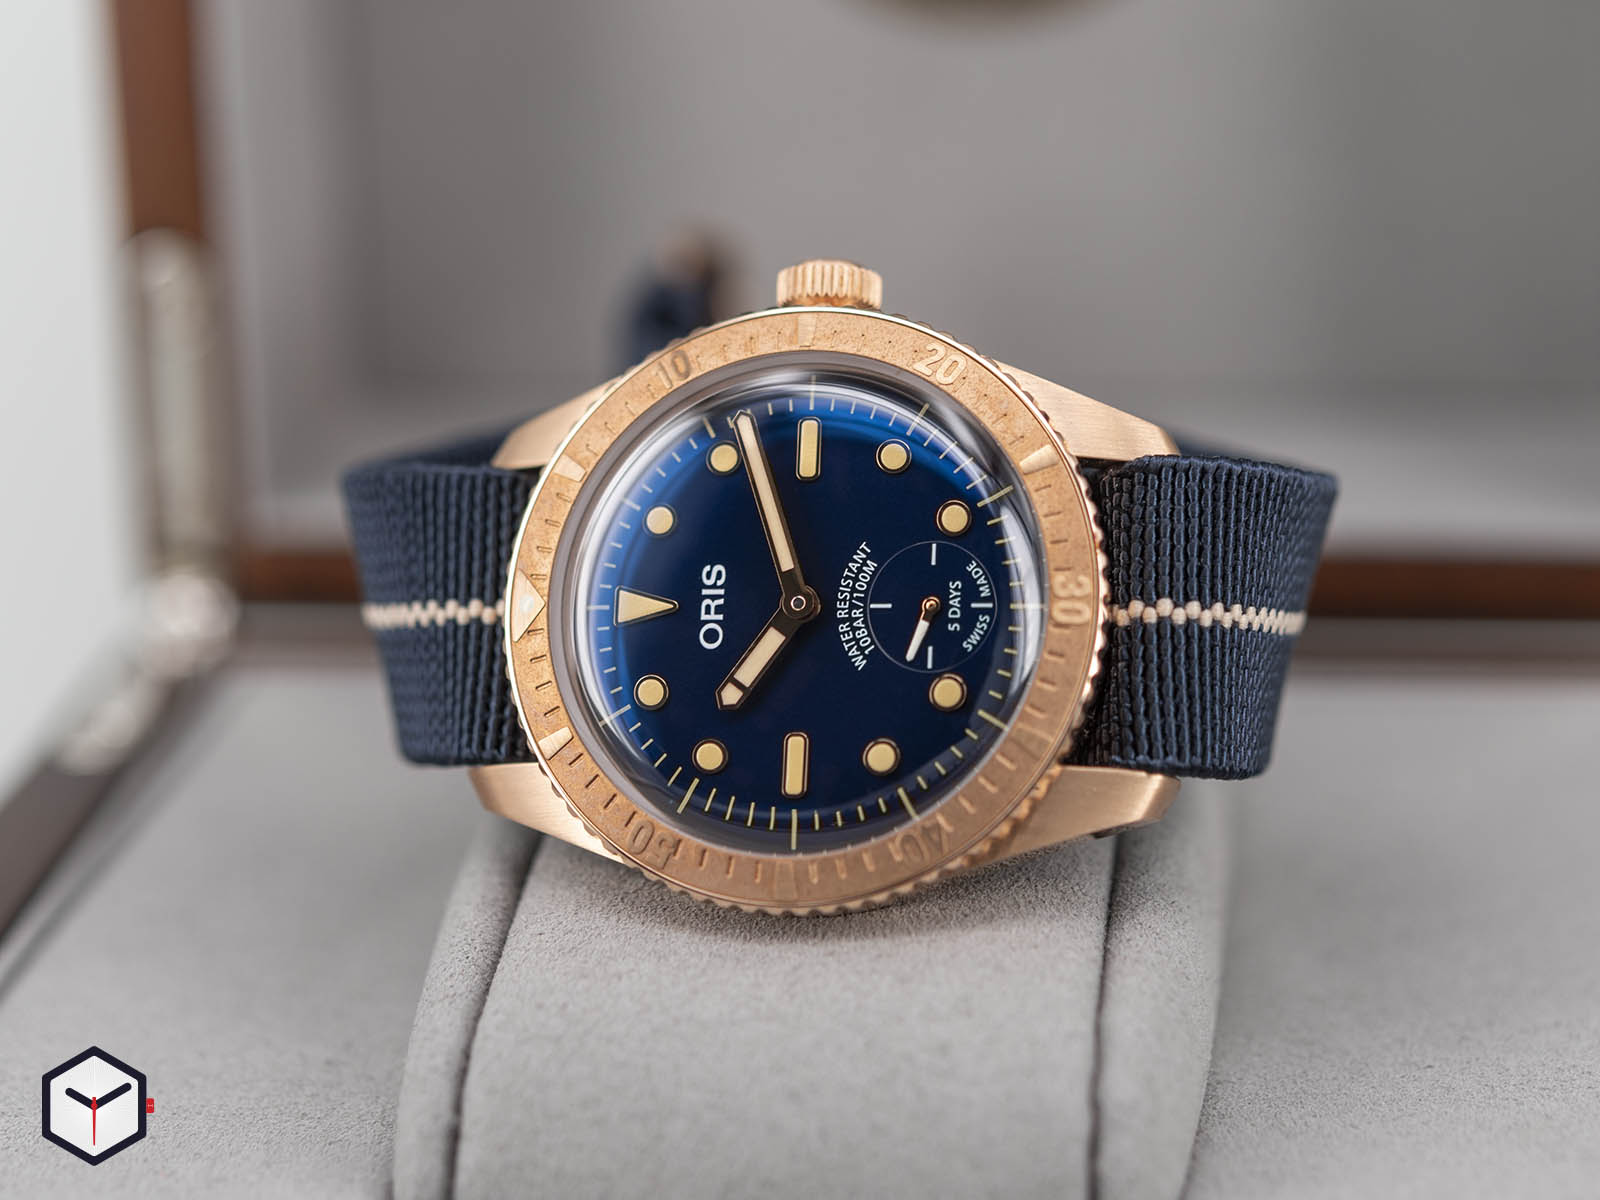 01-401-7764-3185-oris-carl-brashear-calibre-401-limited-edition-1.jpg